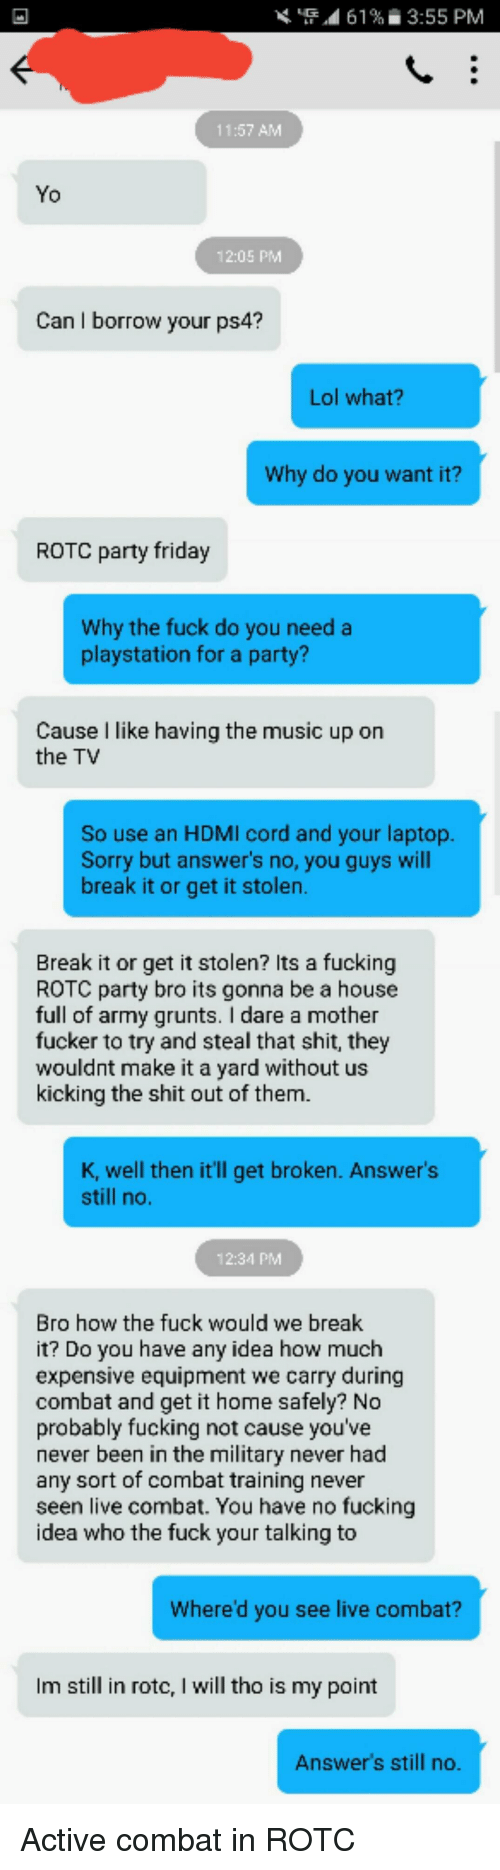 combat training: 'd 61%  3:55 PM  11:57 AMM  Yo  12:05 PM  Can I borrow your ps4?  Lol what?  Why do you want it?  ROTC party friday  Why the fuck do you need a  playstation for a party?  Cause l like having the music up on  the TV  So use an HDMI cord and your laptop.  Sorry but answer's no, you guys will  break it or get it stolen.  Break it or get it stolen? Its a fucking  ROTC party bro its gonna be a house  full of army grunts. I dare a mother  fucker to try and steal that shit, they  wouldnt make it a yard without us  kicking the shit out of them  K, well then it'll get broken. Answer's  still no.  12:34 PM  Bro how the fuck would we break  it? Do you have any idea how much  expensive equipment we carry during  combat and get it home safely? No  probably fucking not cause you've  never been in the military never had  any sort of combat training never  seen live combat. You have no fucking  idea who the fuck your talking to  Where'd you see live combat?  Im still in rotc, I will tho is my point  Answer's still no.